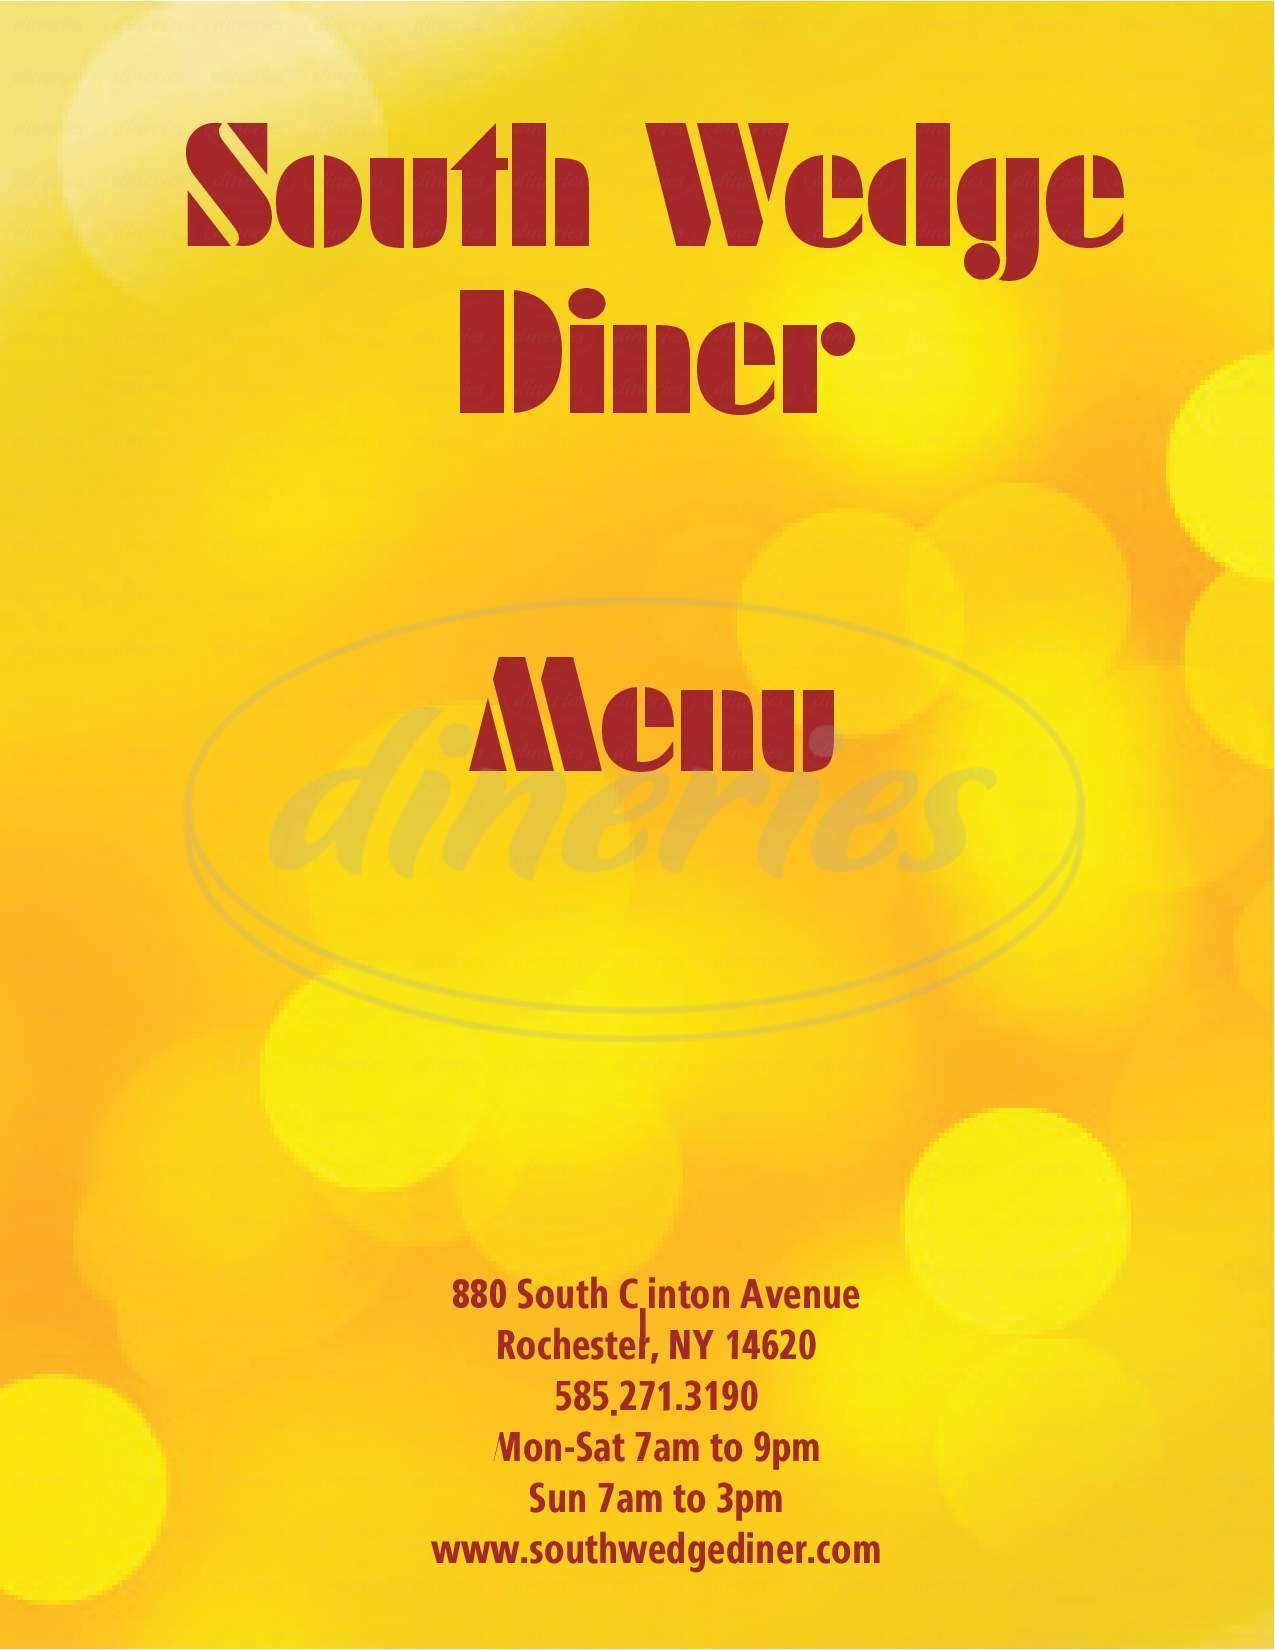 menu for South Wedge Diner